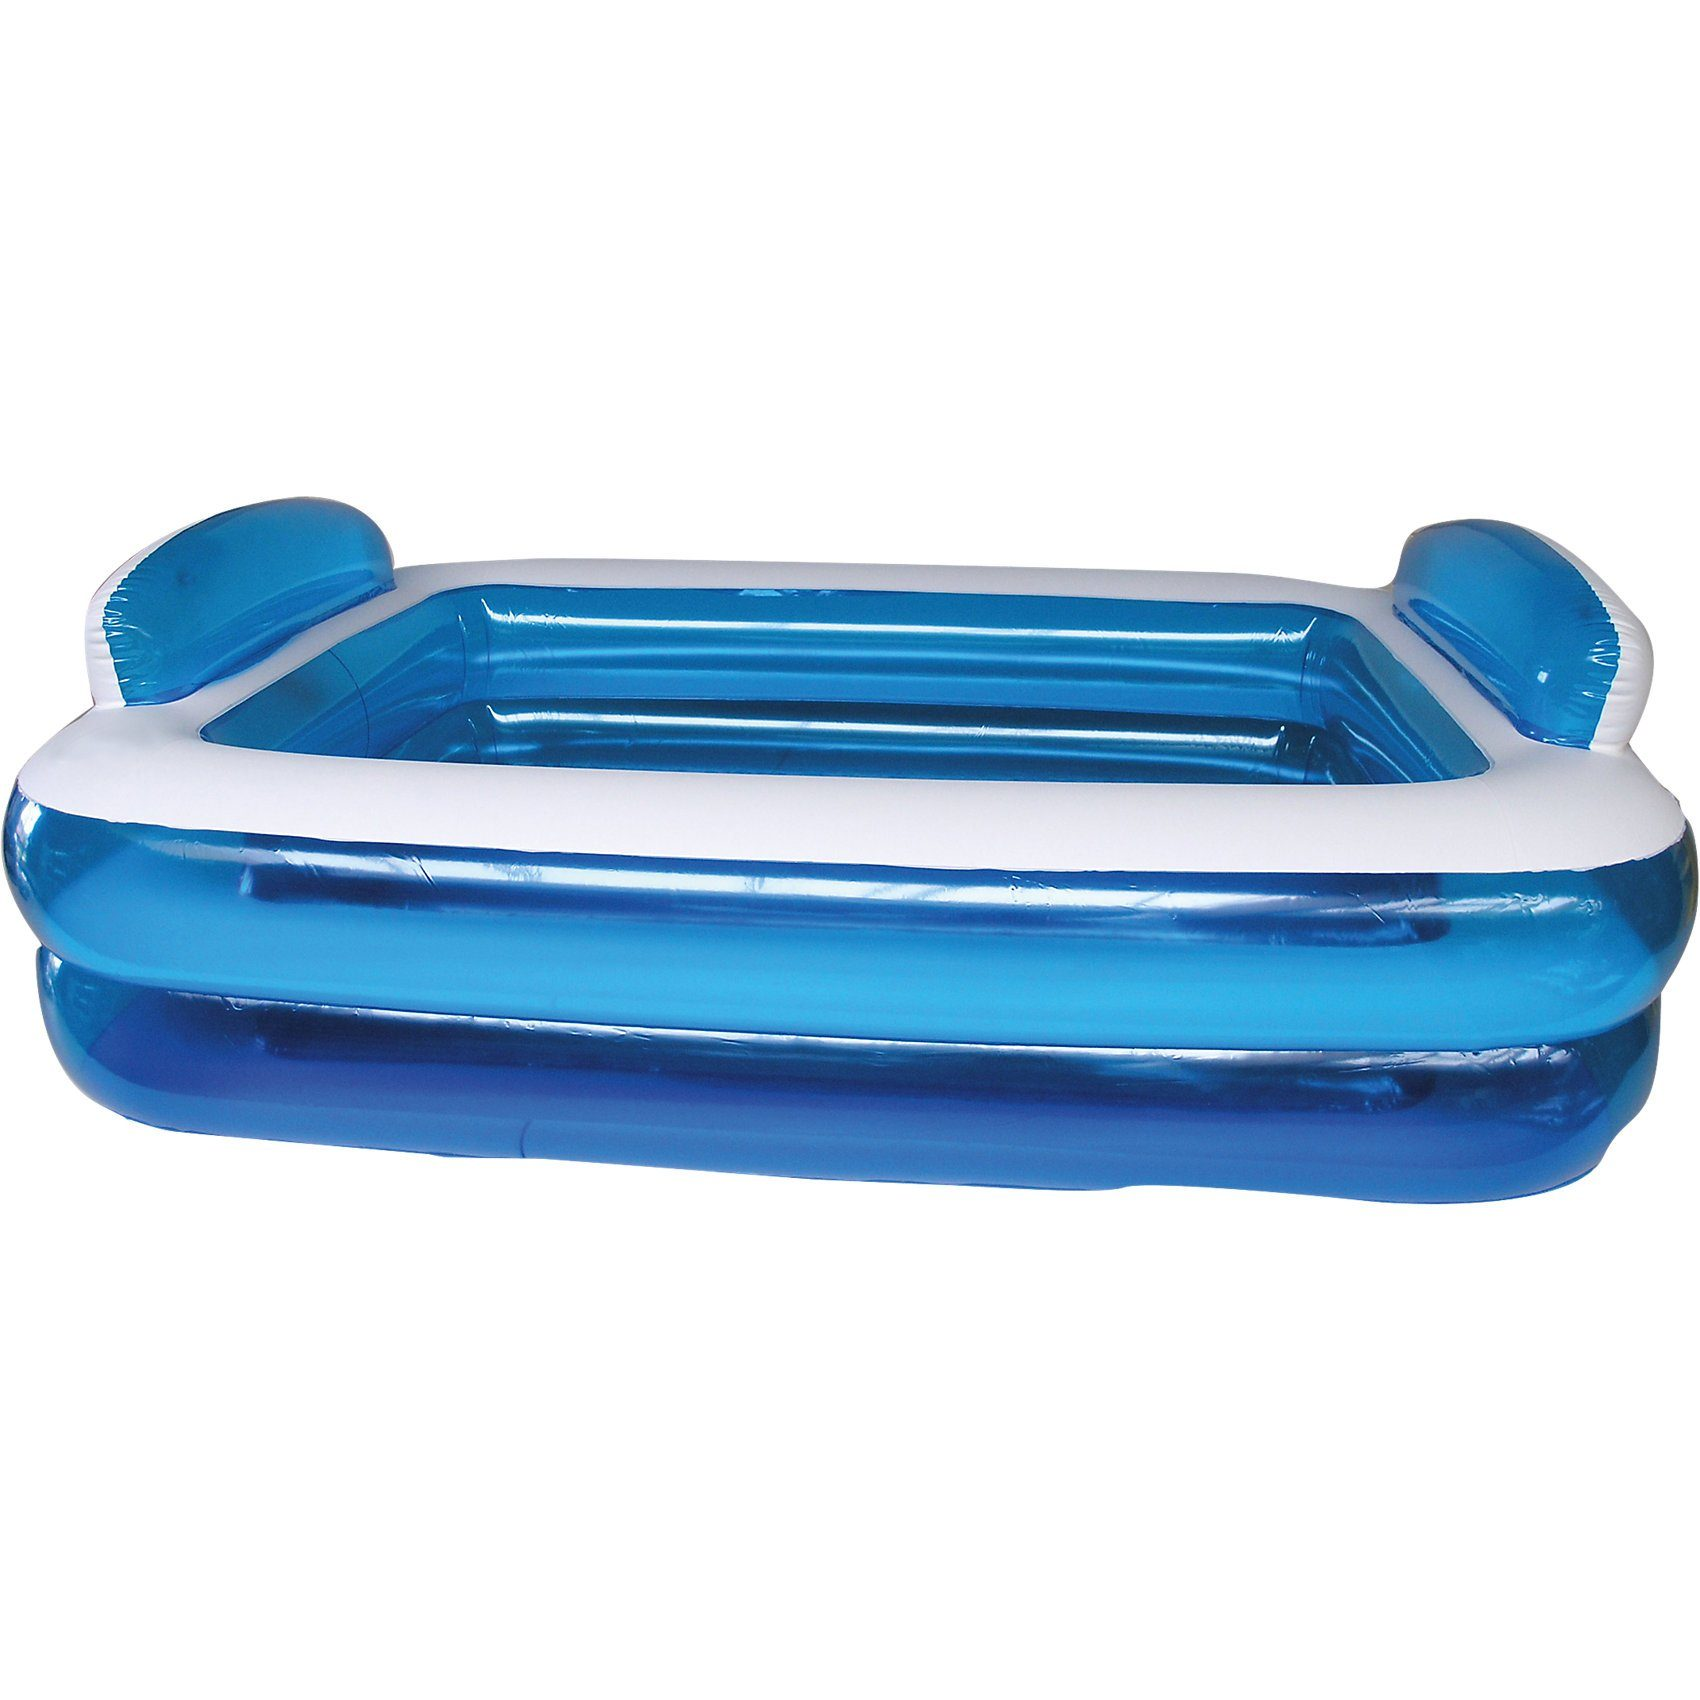 Royalbeach Giant Relax Pool 200 x 145 x 45 cm